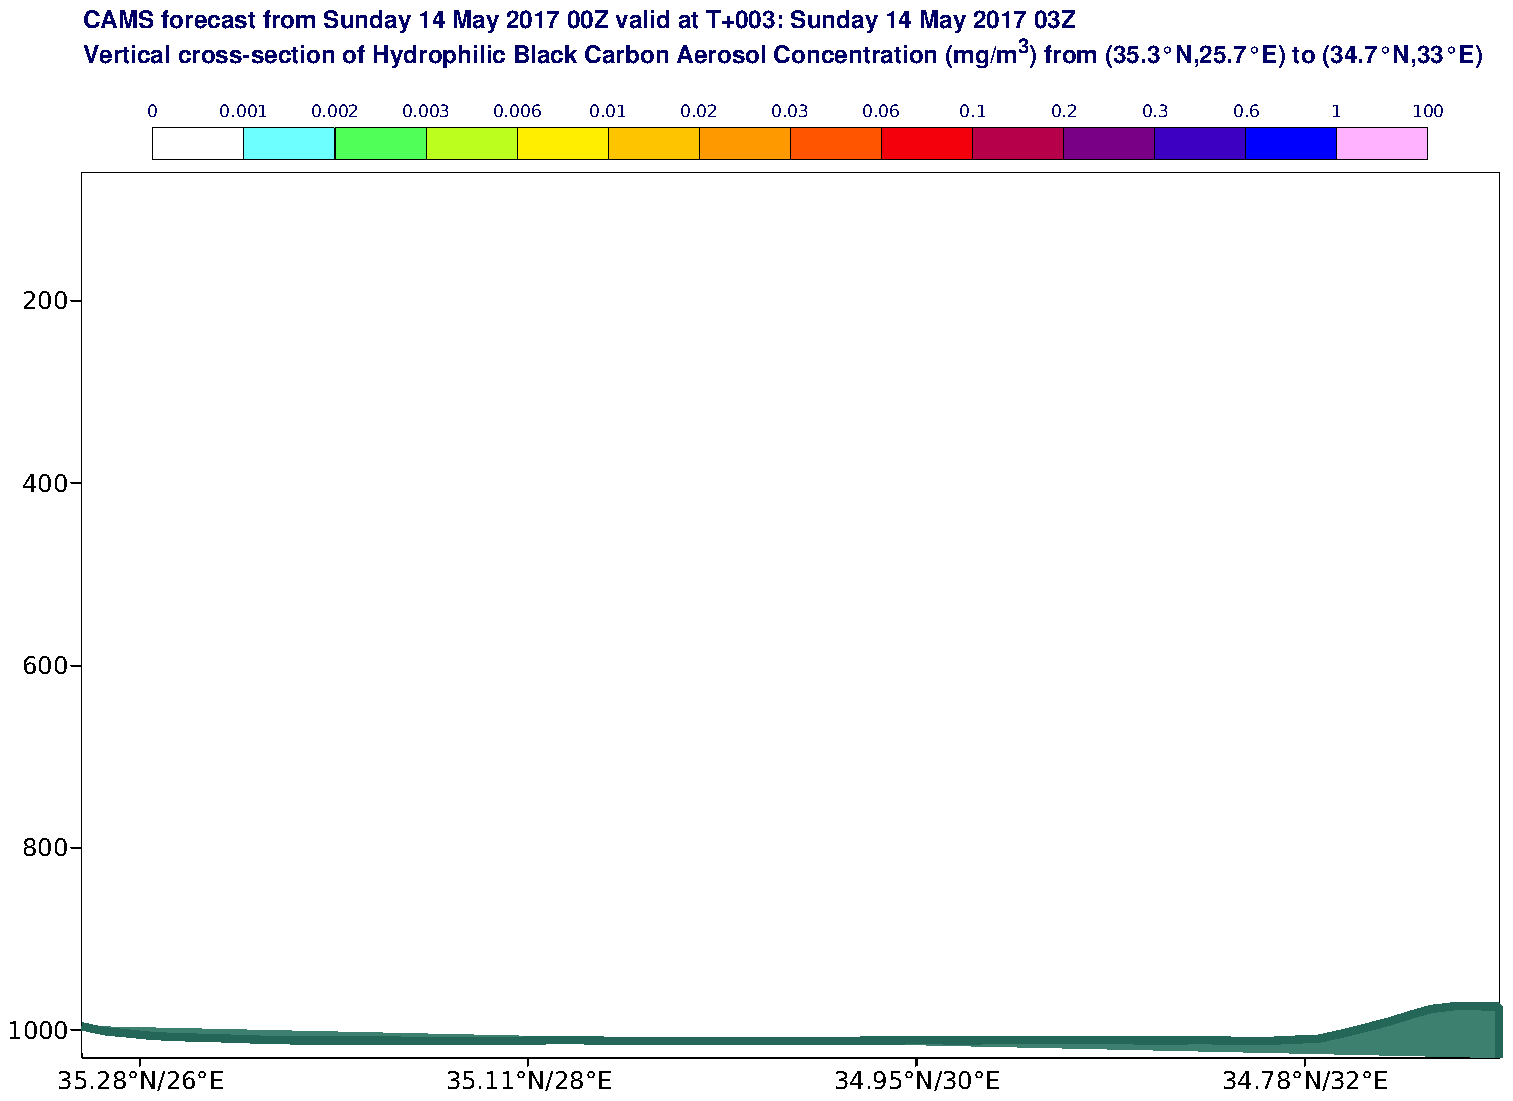 Vertical cross-section of Hydrophilic Black Carbon Aerosol Concentration (mg/m3) valid at T3 - 2017-05-14 03:00